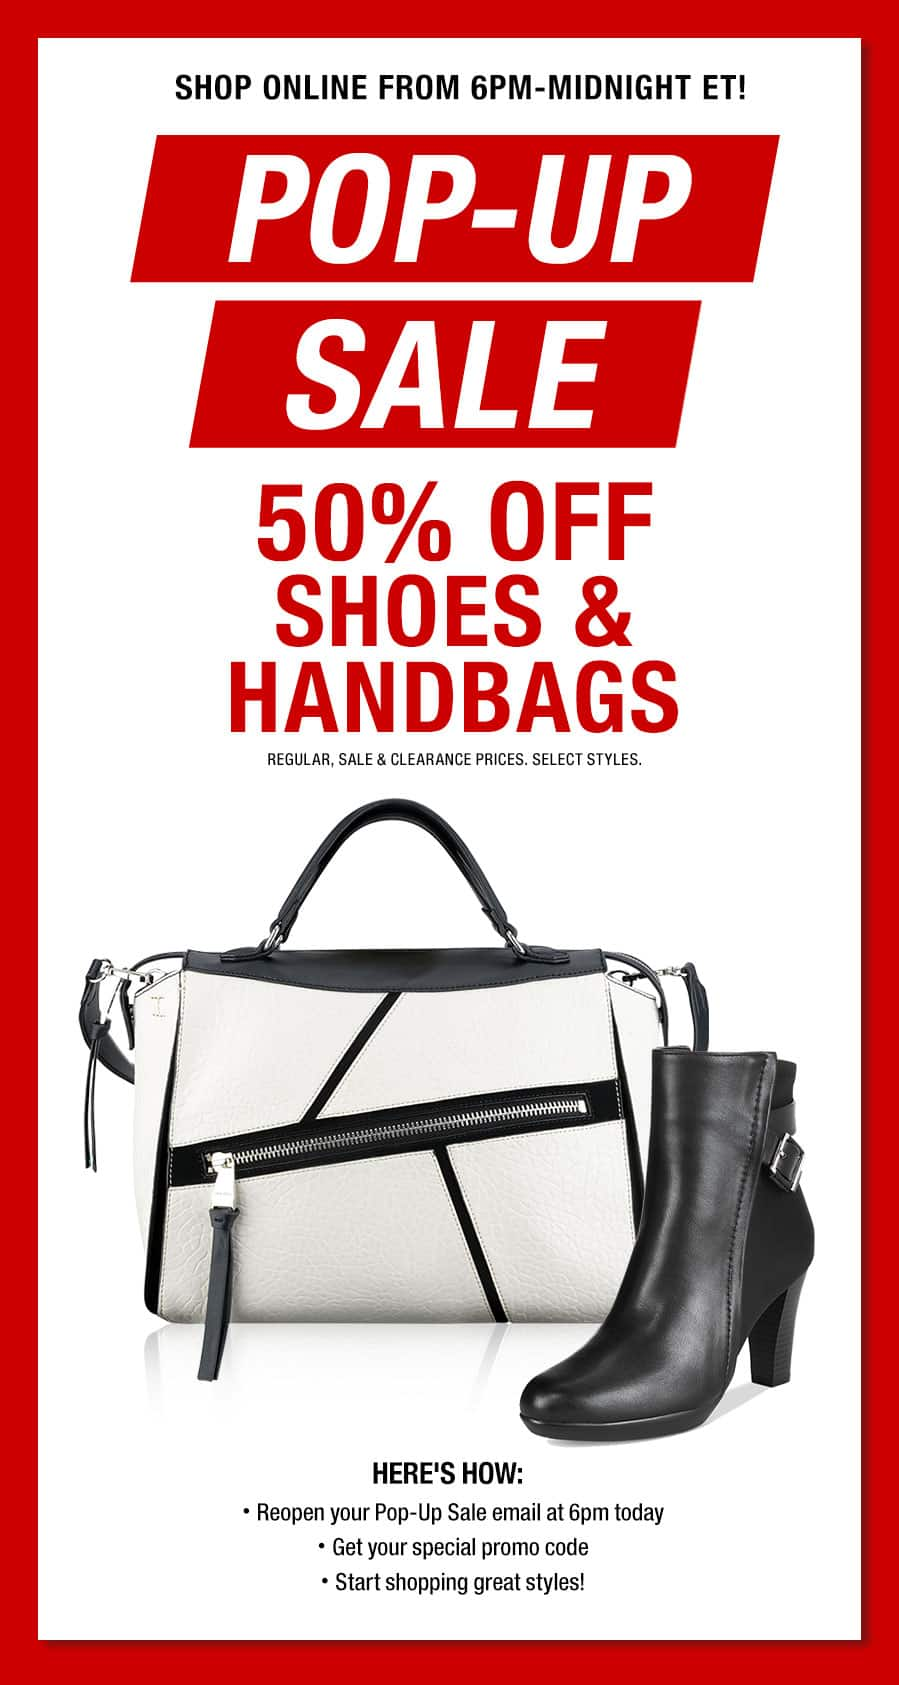 LIVE! - Macys.com Pop-up Sale: 50% Handbags and Shoes (Regular, Sale or Clearance Items). Tonight from 6PM Eastern util Midnight.